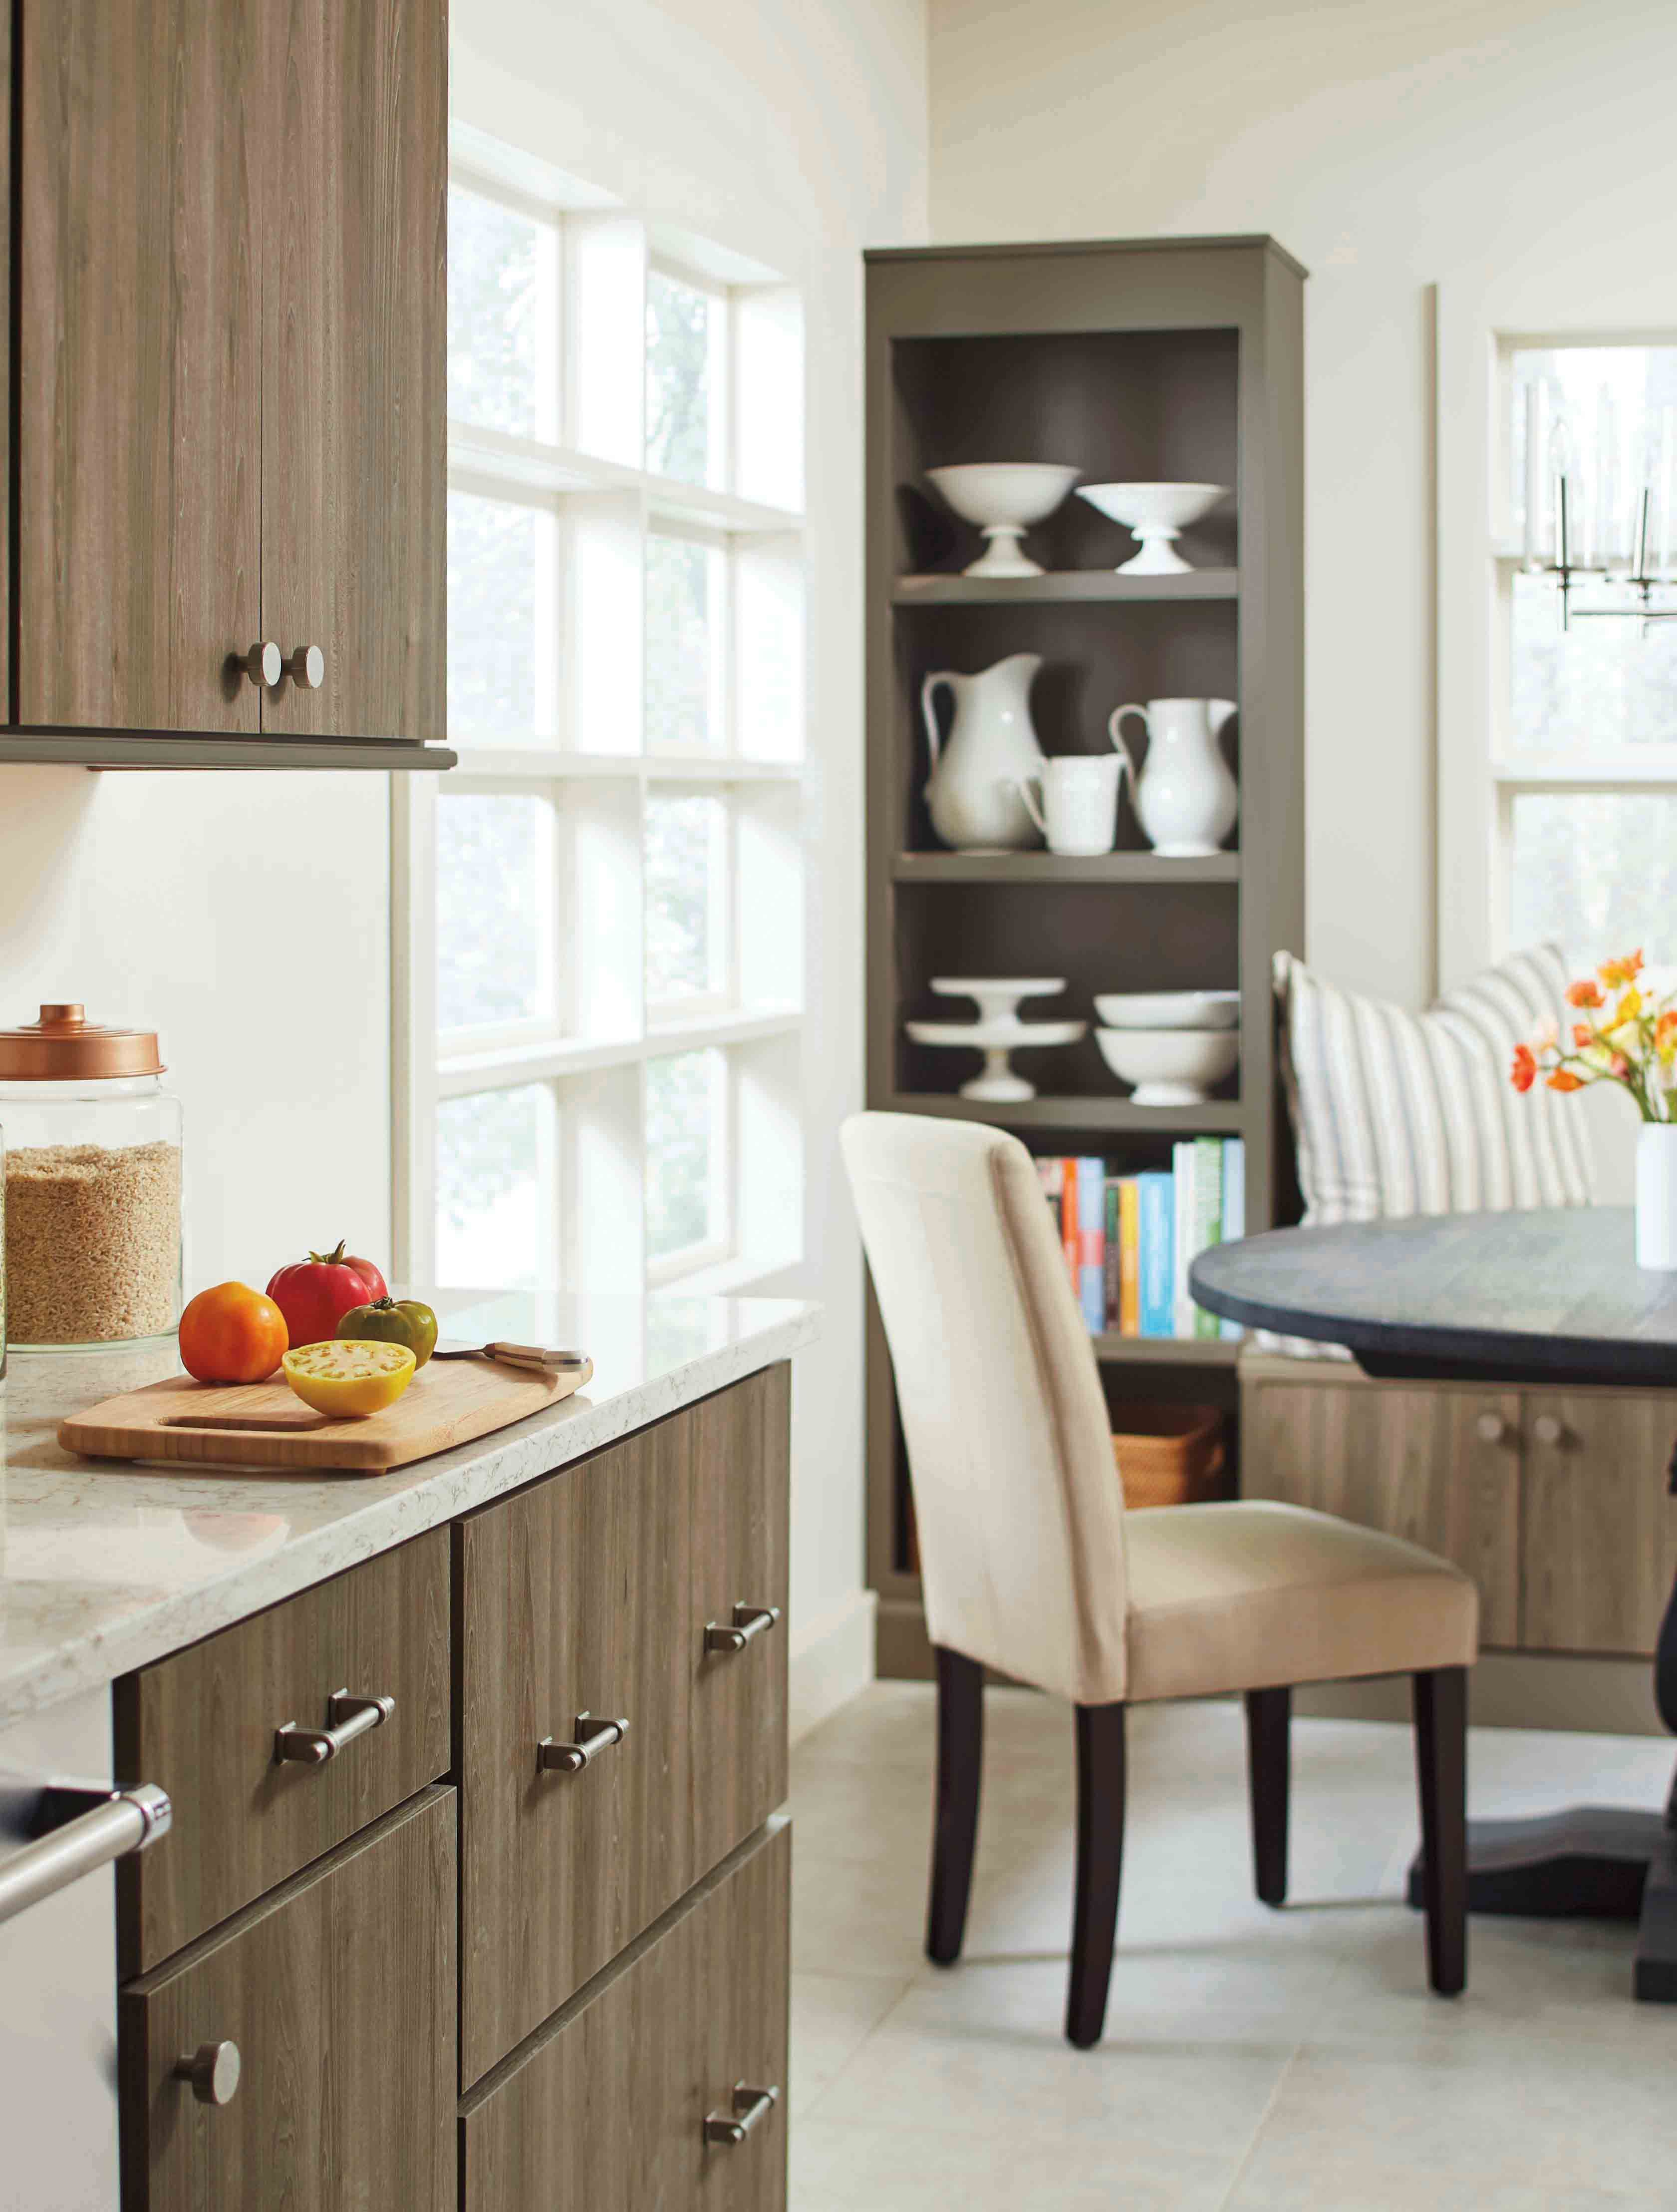 these new cabinets will make your kitchen more efficient   martha